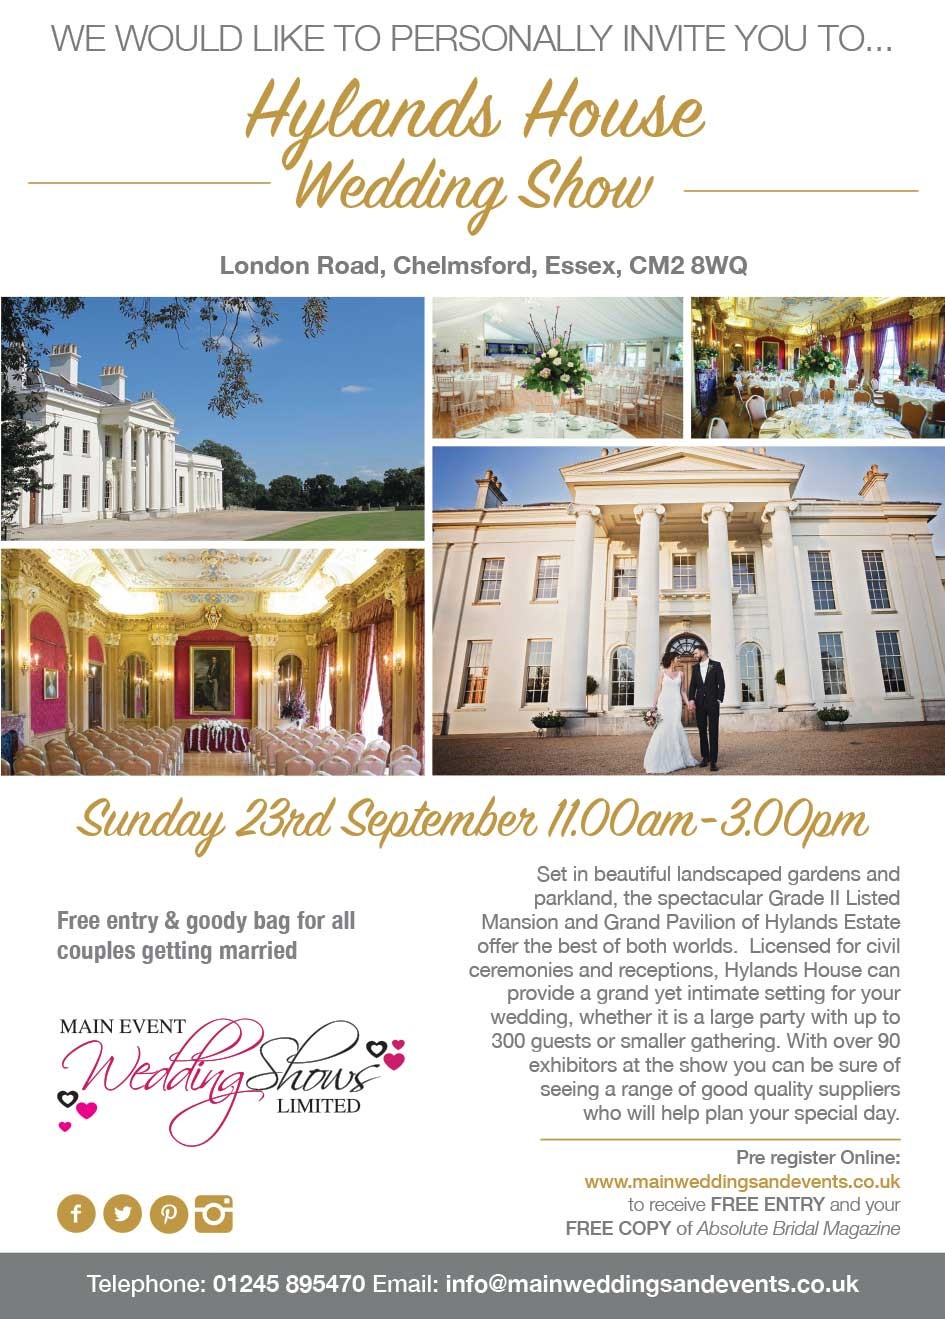 come along to Hylands House to meet the current Essex Wedding Photographer of the Year WINNER gavin conlan photography Ltd on the 23rd September 2018.  The Main Event Wedding Show starts at 11AM.